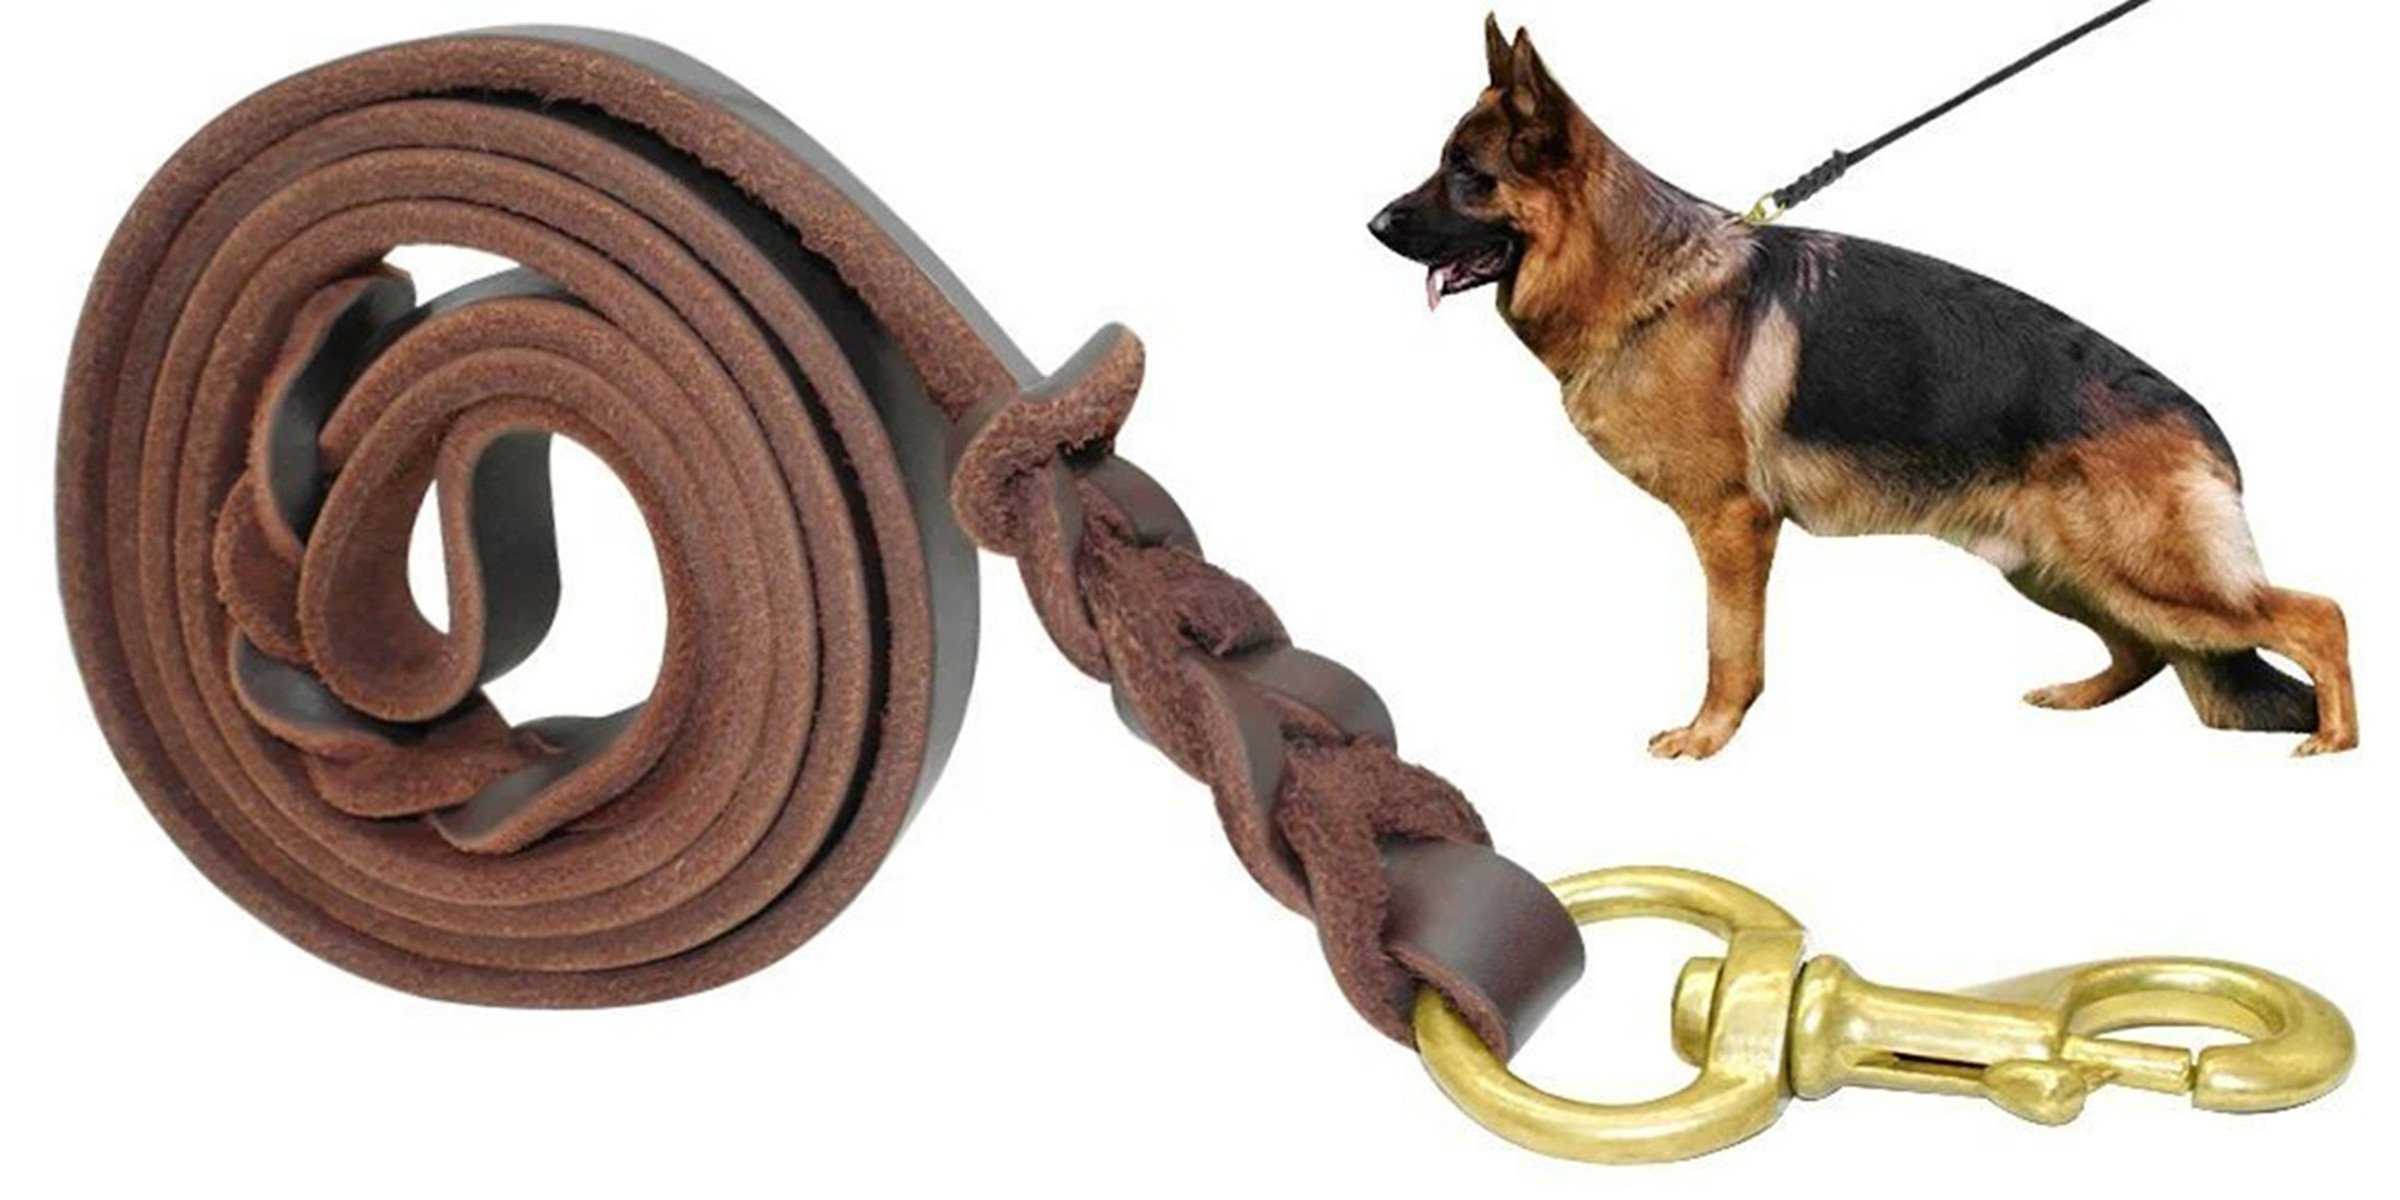 Fairwin Braided Leather Dog Training Leash 6 Foot - Best Military Grade Heavy Duty Dog Leash for Large Medium Small Dogs (5/8'' Width, Brown) 004